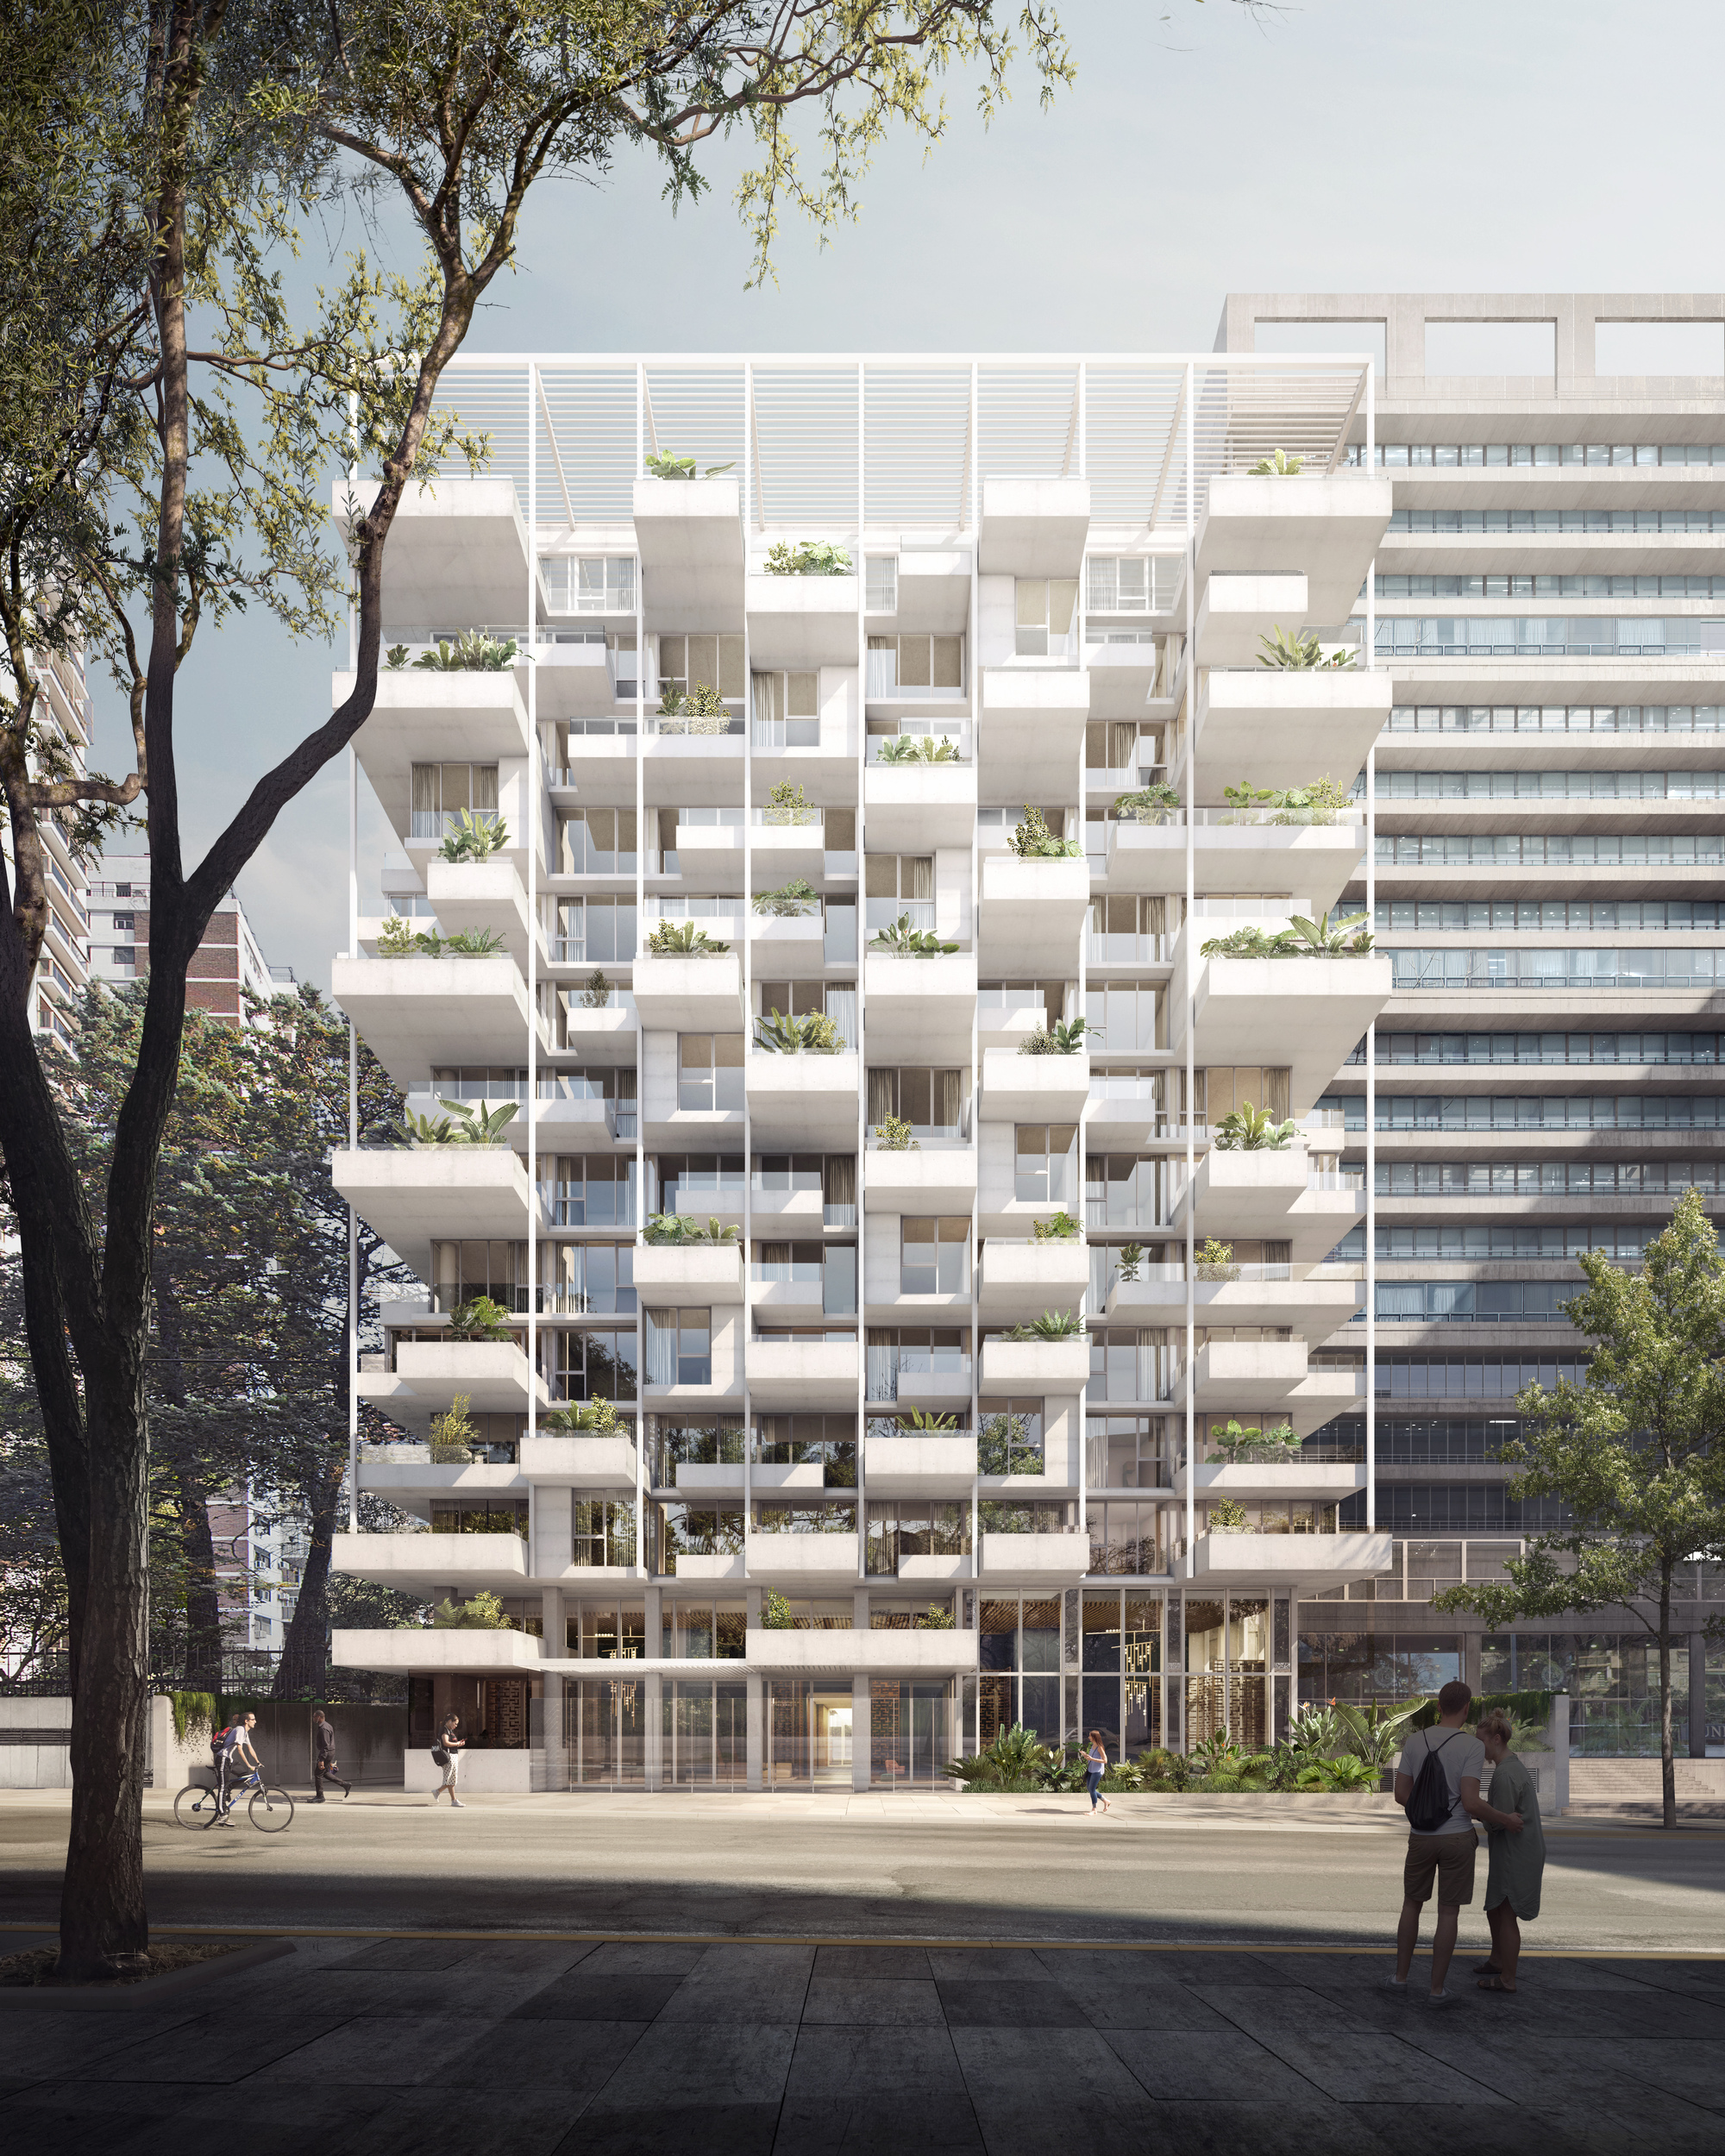 Construction Begins on ODA's ZETA Residential Building in Buenos Aires